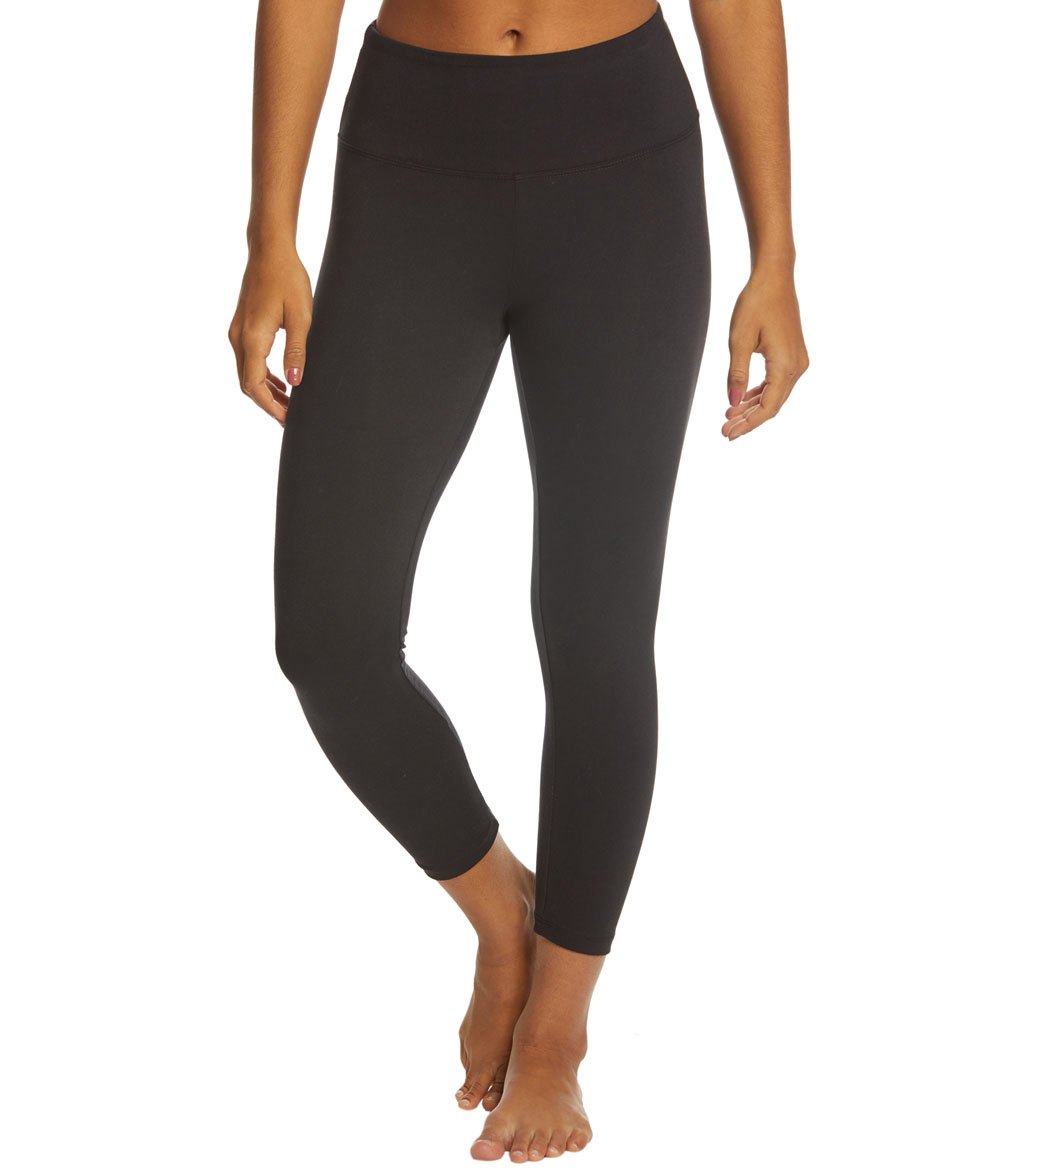 c18817a2142350 Balance Collection Solid High Waisted Yoga Capris